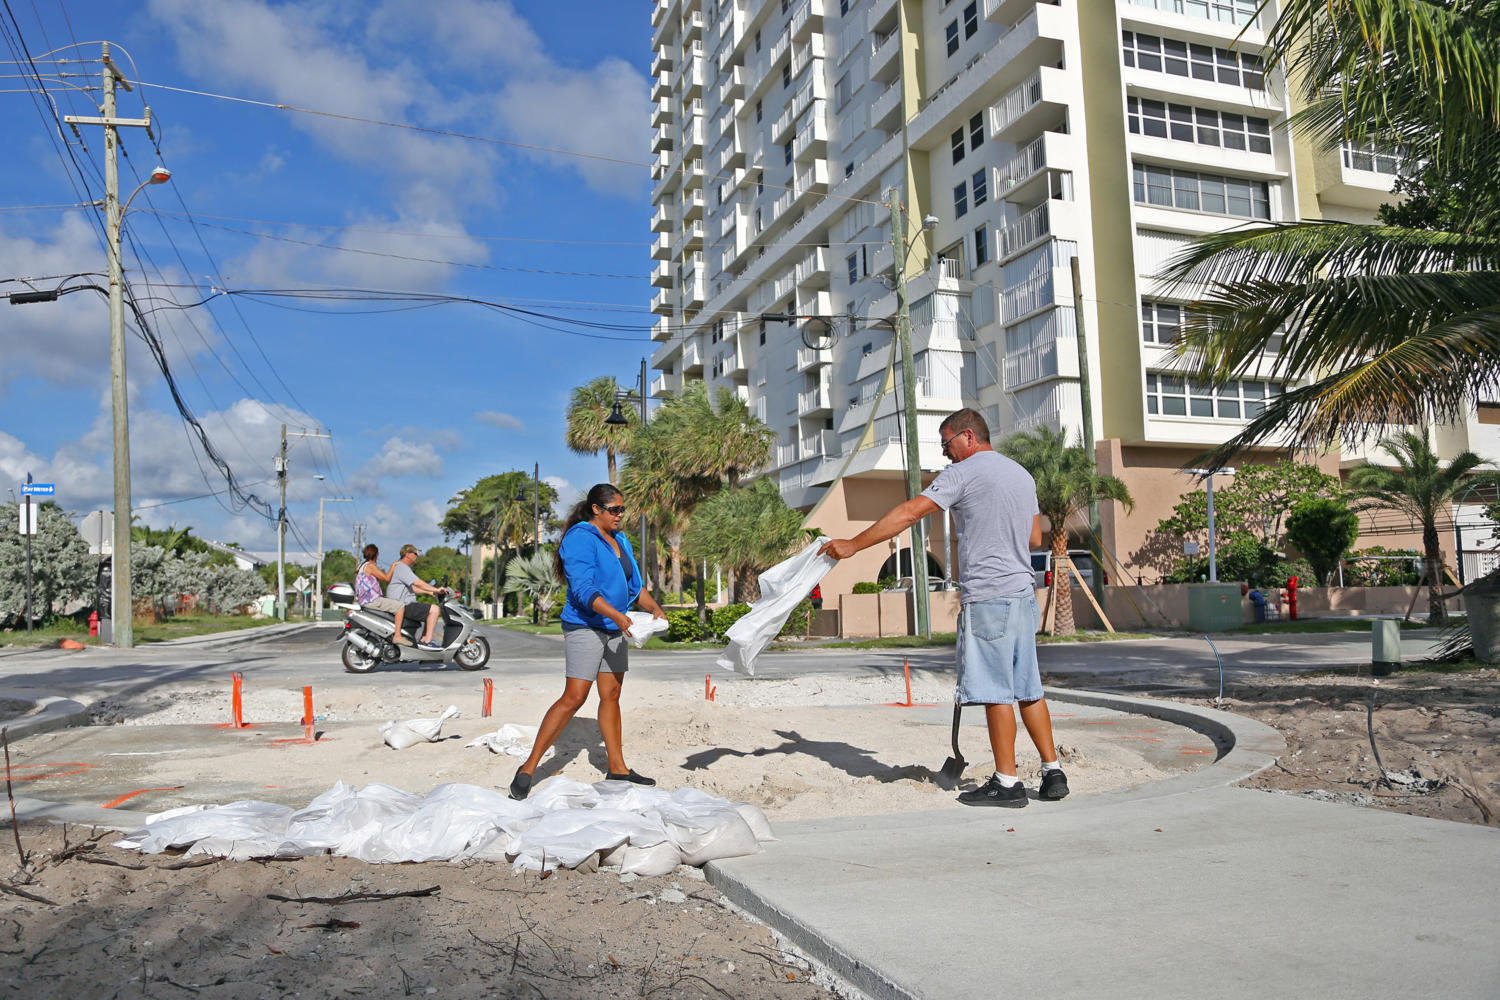 Liz Hankins and James Kiernan, of North Lauderdale, fill trash bags with sand on Pompano Beach in preparation for Hurricane Irma on Friday, Sept. 8, 2017. (Amy Beth Bennett /Sun Sentinel/TNS) SOUTH FLORIDA OUT; NO MAGS; NO SALES; NO INTERNET; NO TV